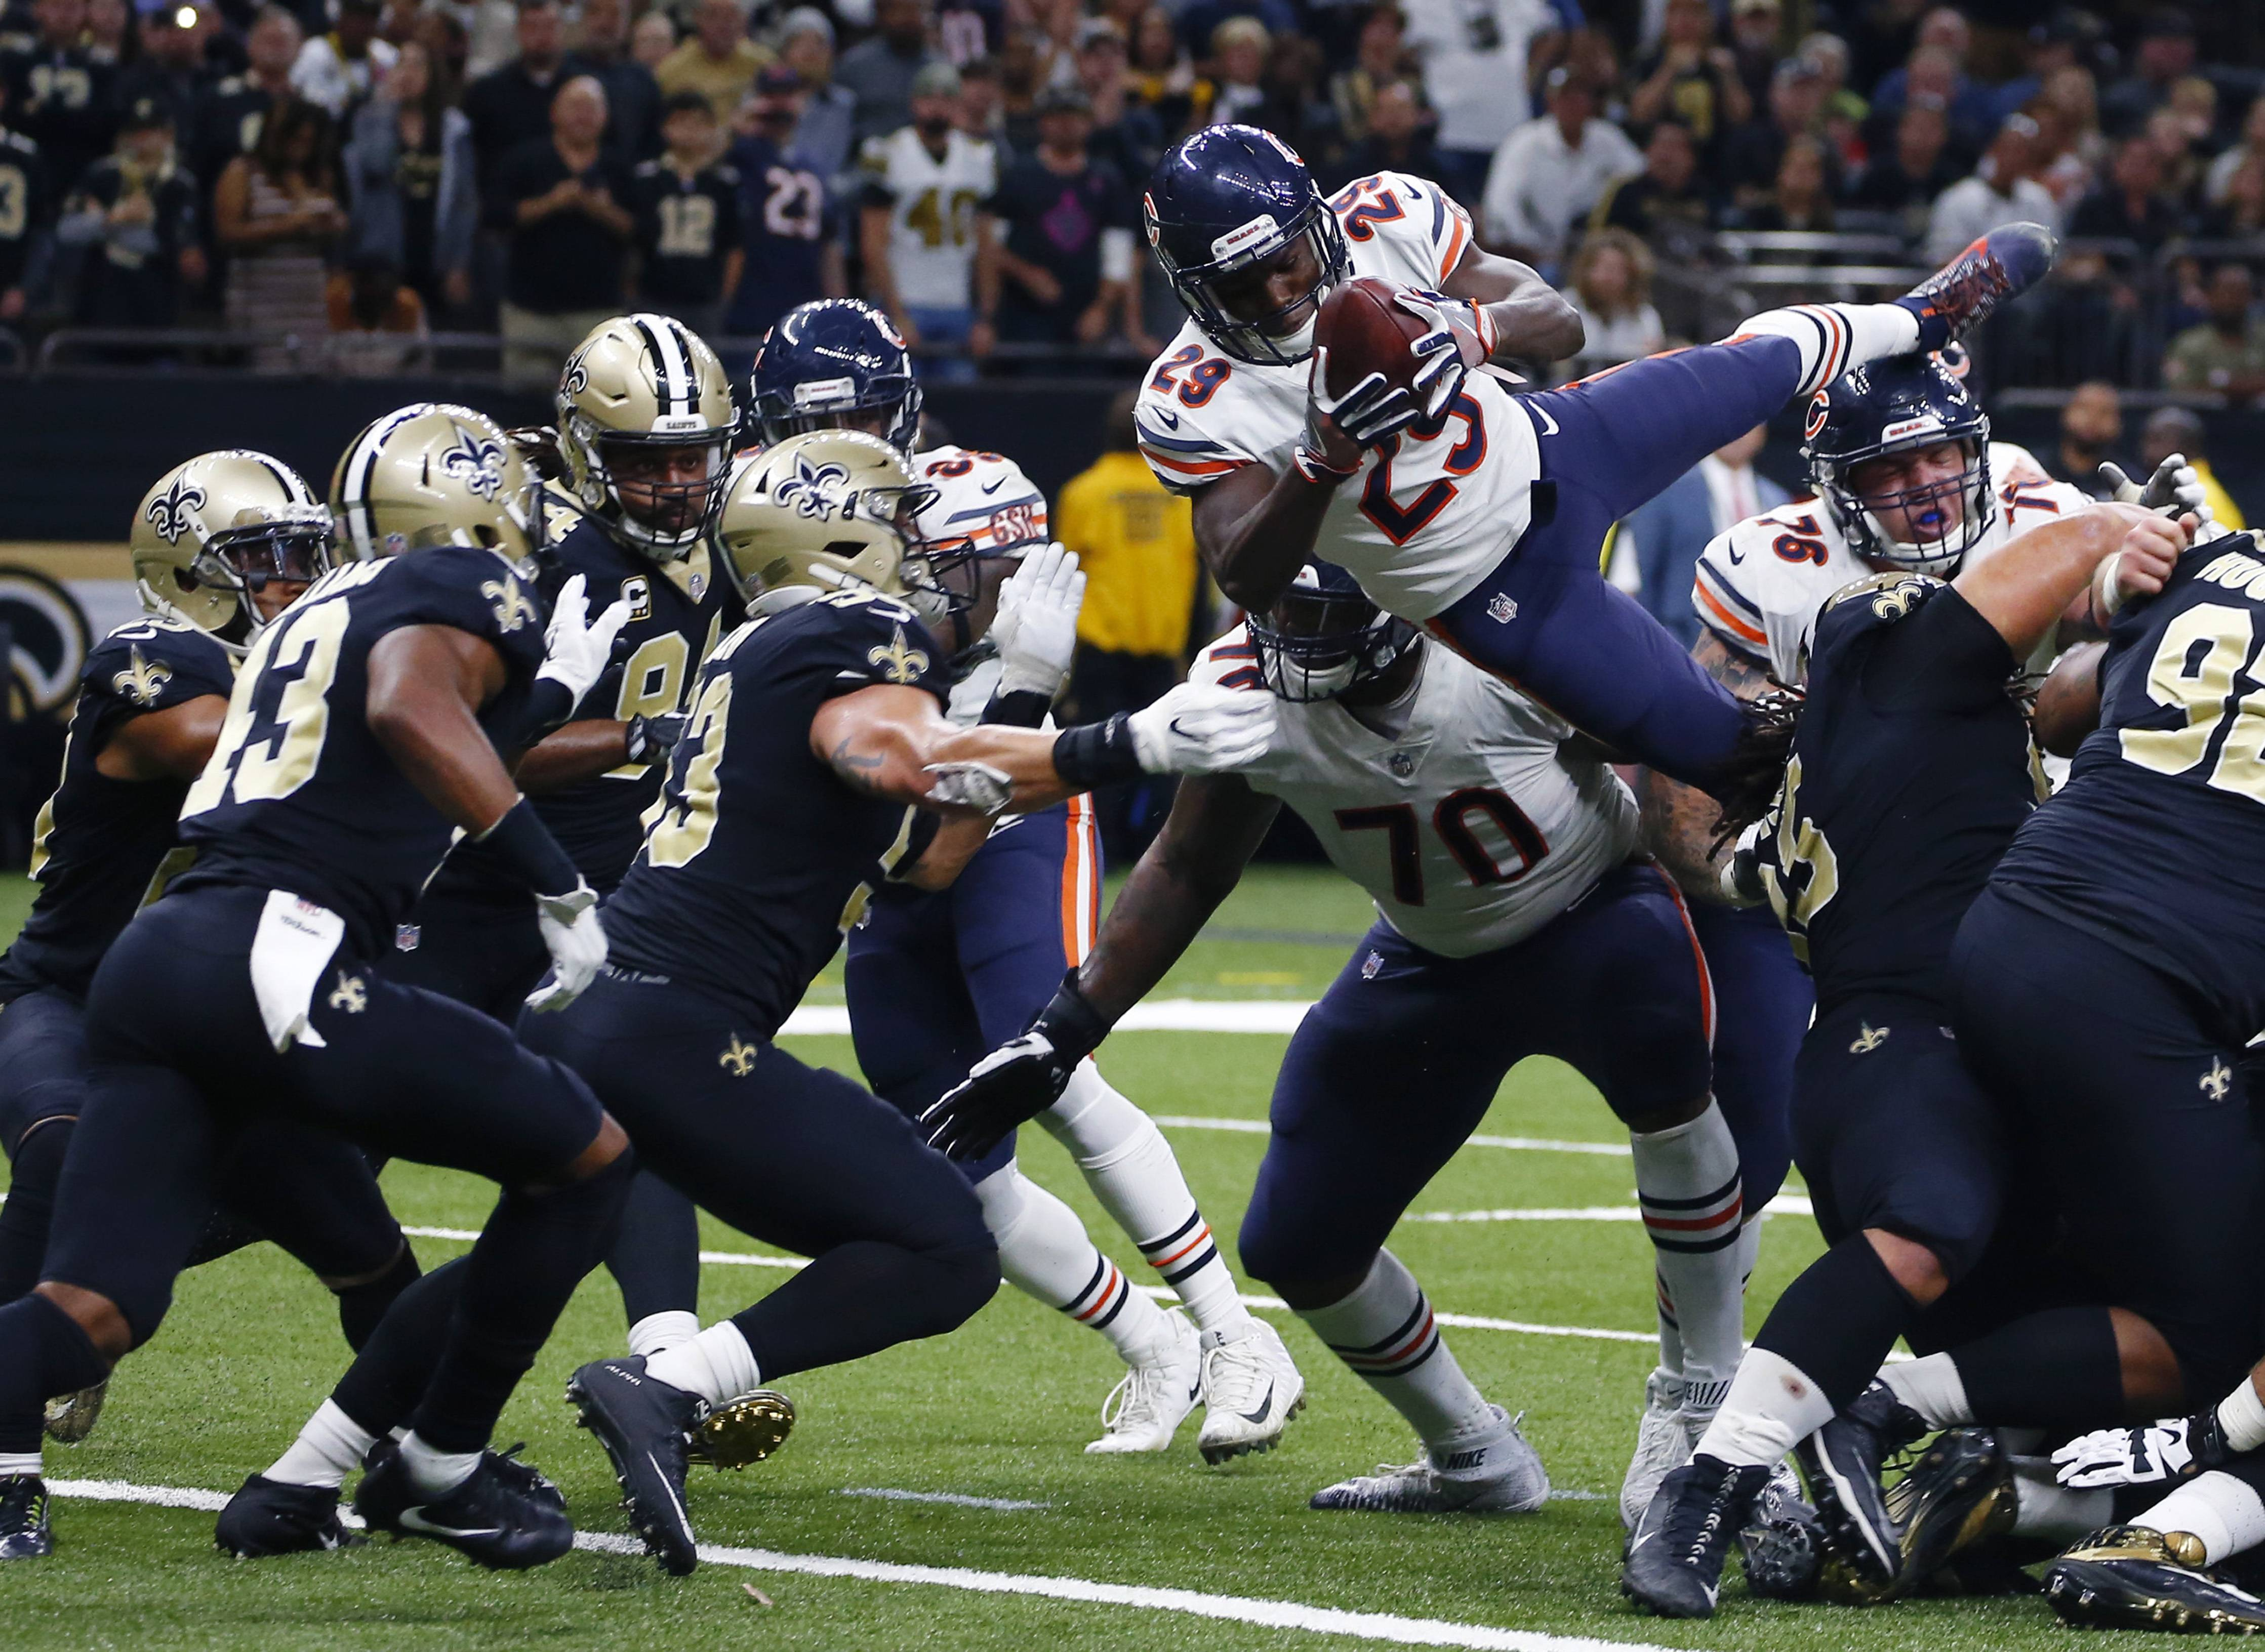 Chicago Bears running back Tarik Cohen (29) dives into the end zone for a touchdown in the second half of an NFL football game against the New Orleans Saints in New Orleans, Sunday, Oct. 29, 2017.